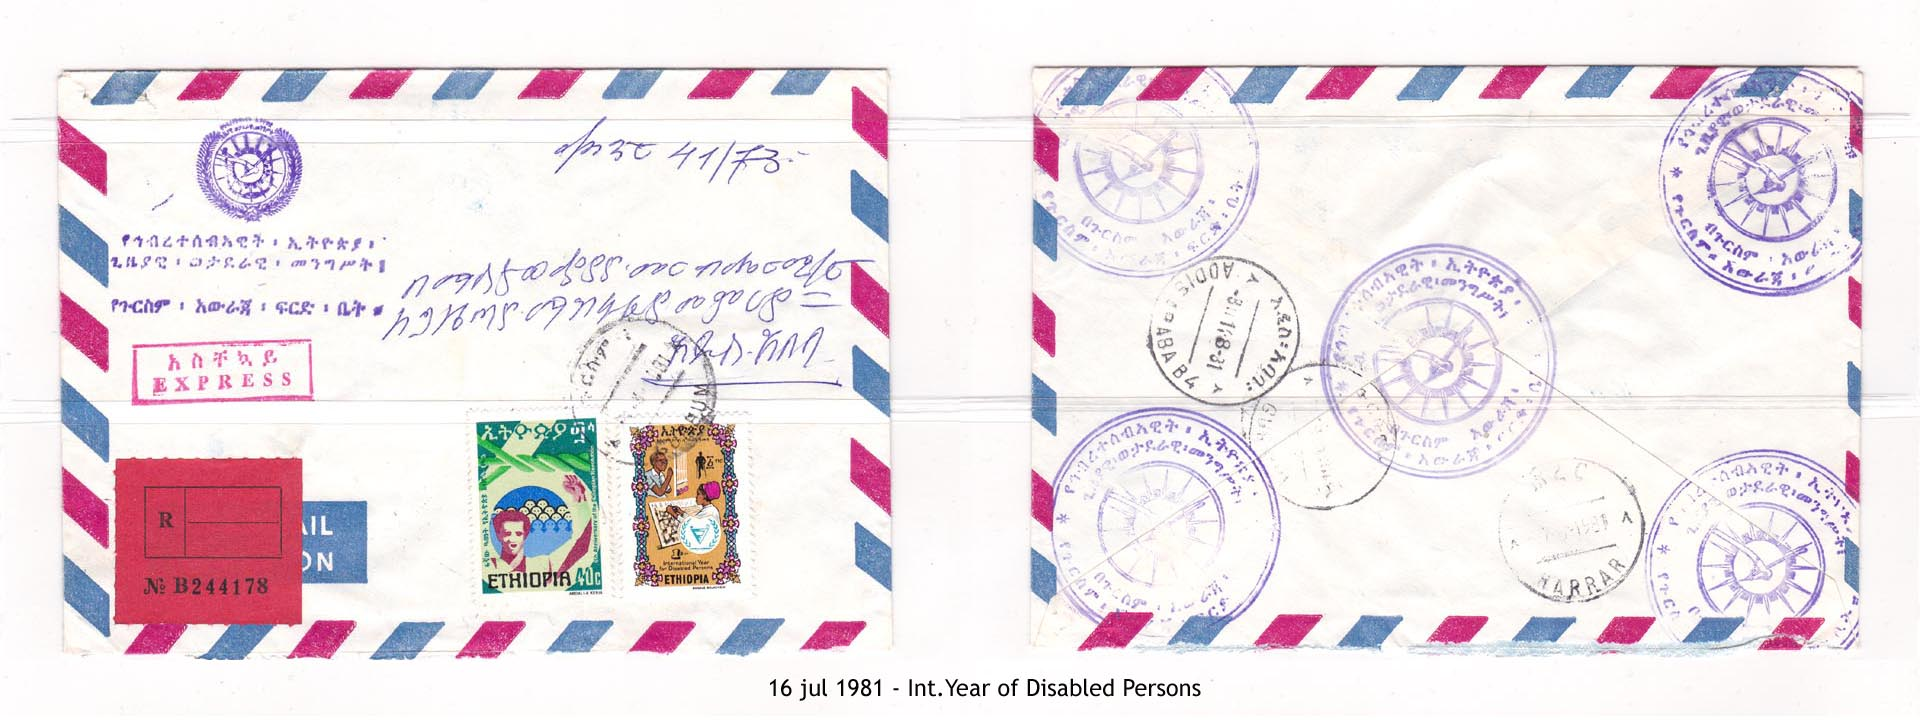 19810716 - Int.Year of Disabled Persons z